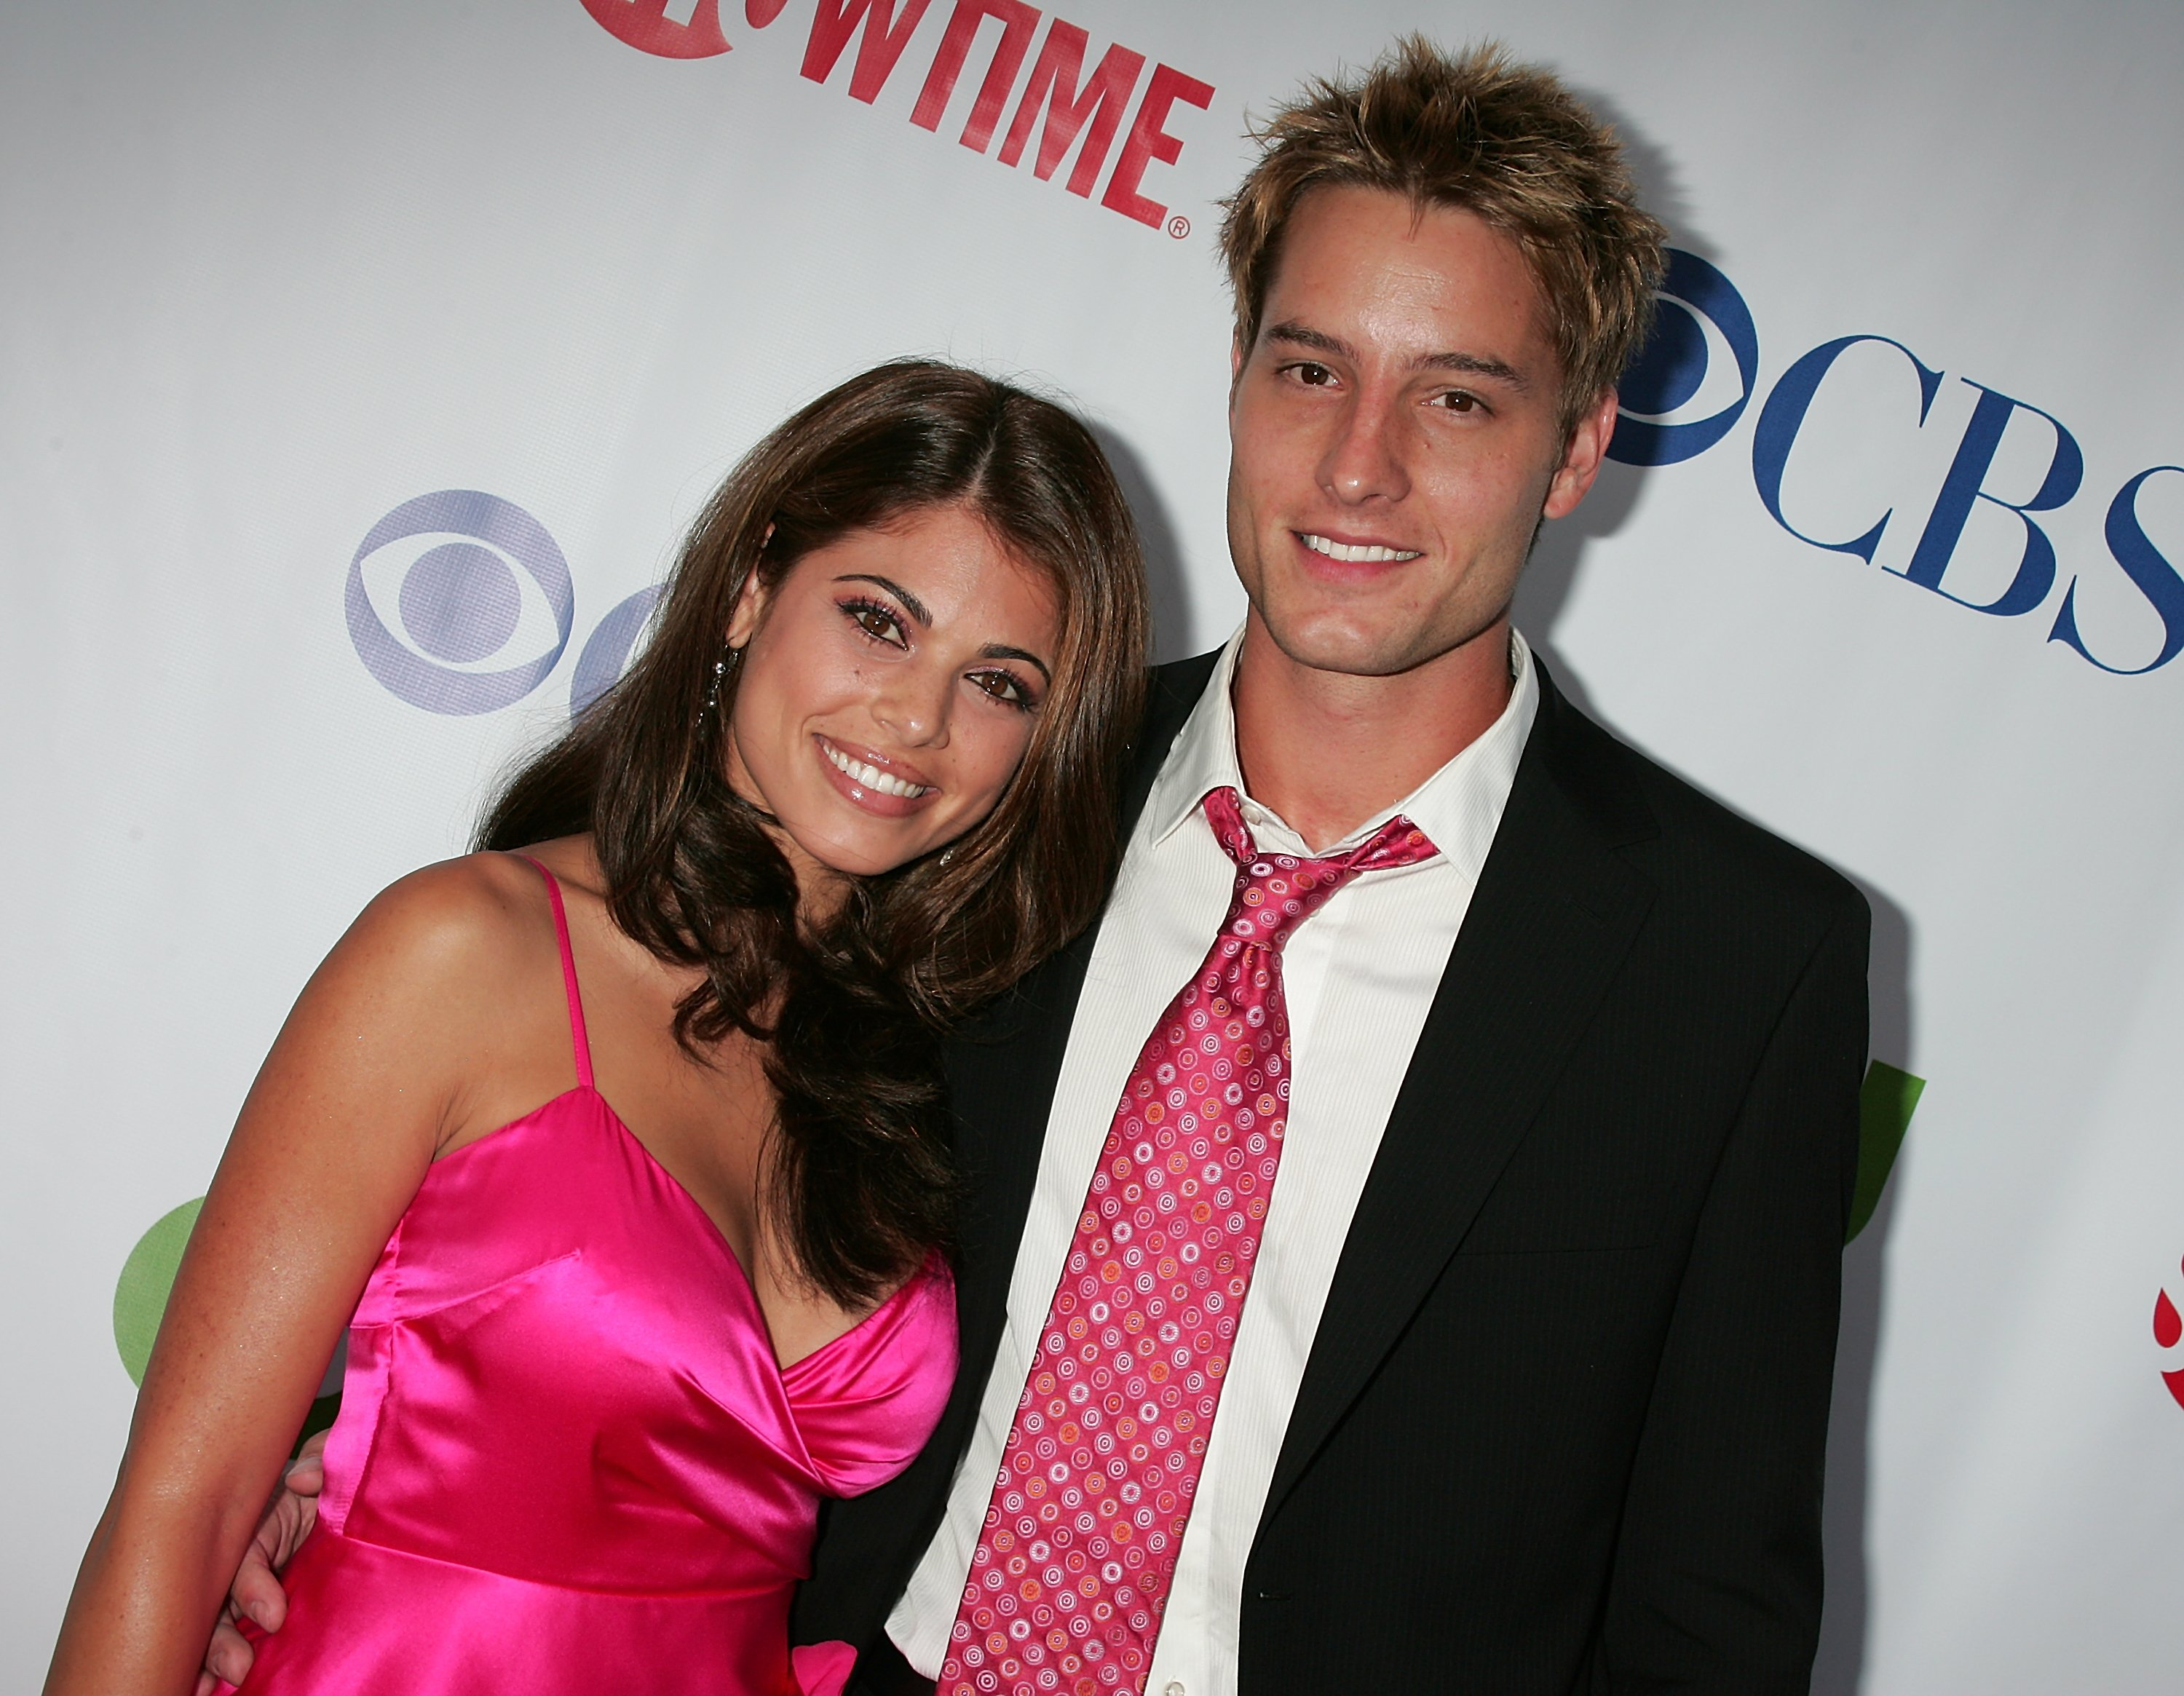 Lindsay Hartley (L) and Justin Hartley attend the CW/CBS/Showtime/CBS Television TCA party at Boulevard3 on July 18, 2008, in Hollywood, California. | Source: Getty Images.